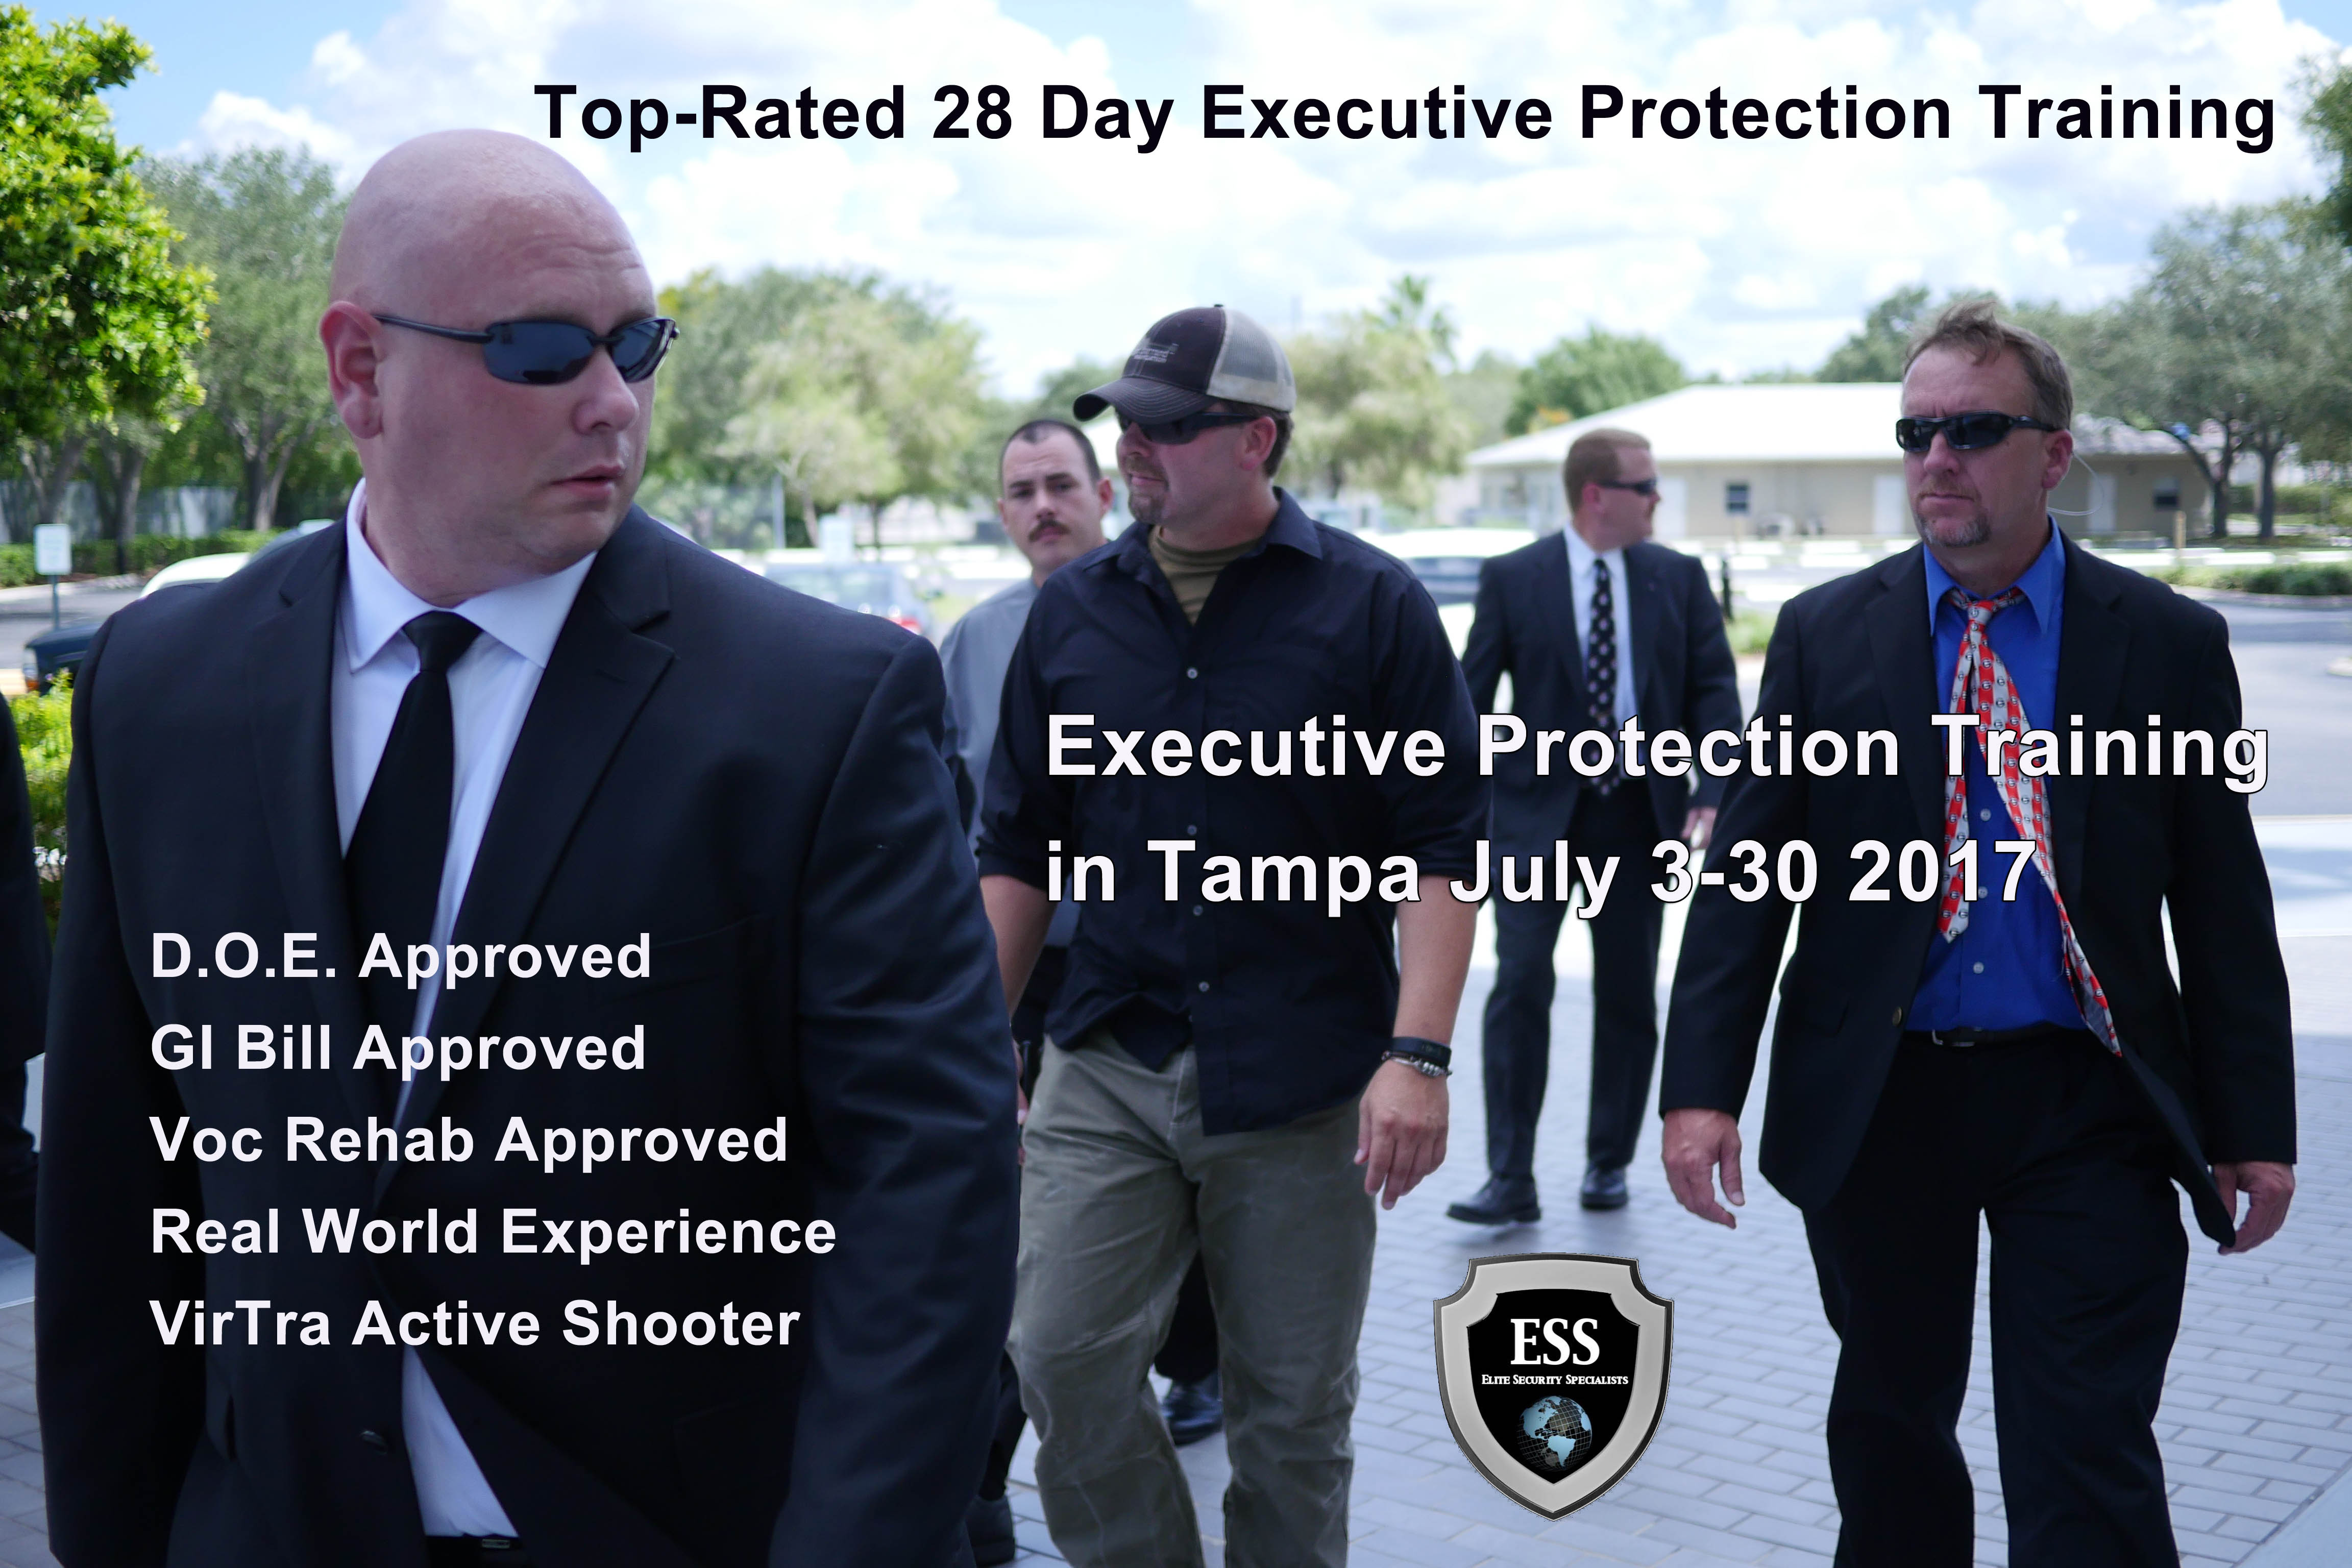 Executive Protection Training in Tampa July 3-30 2017